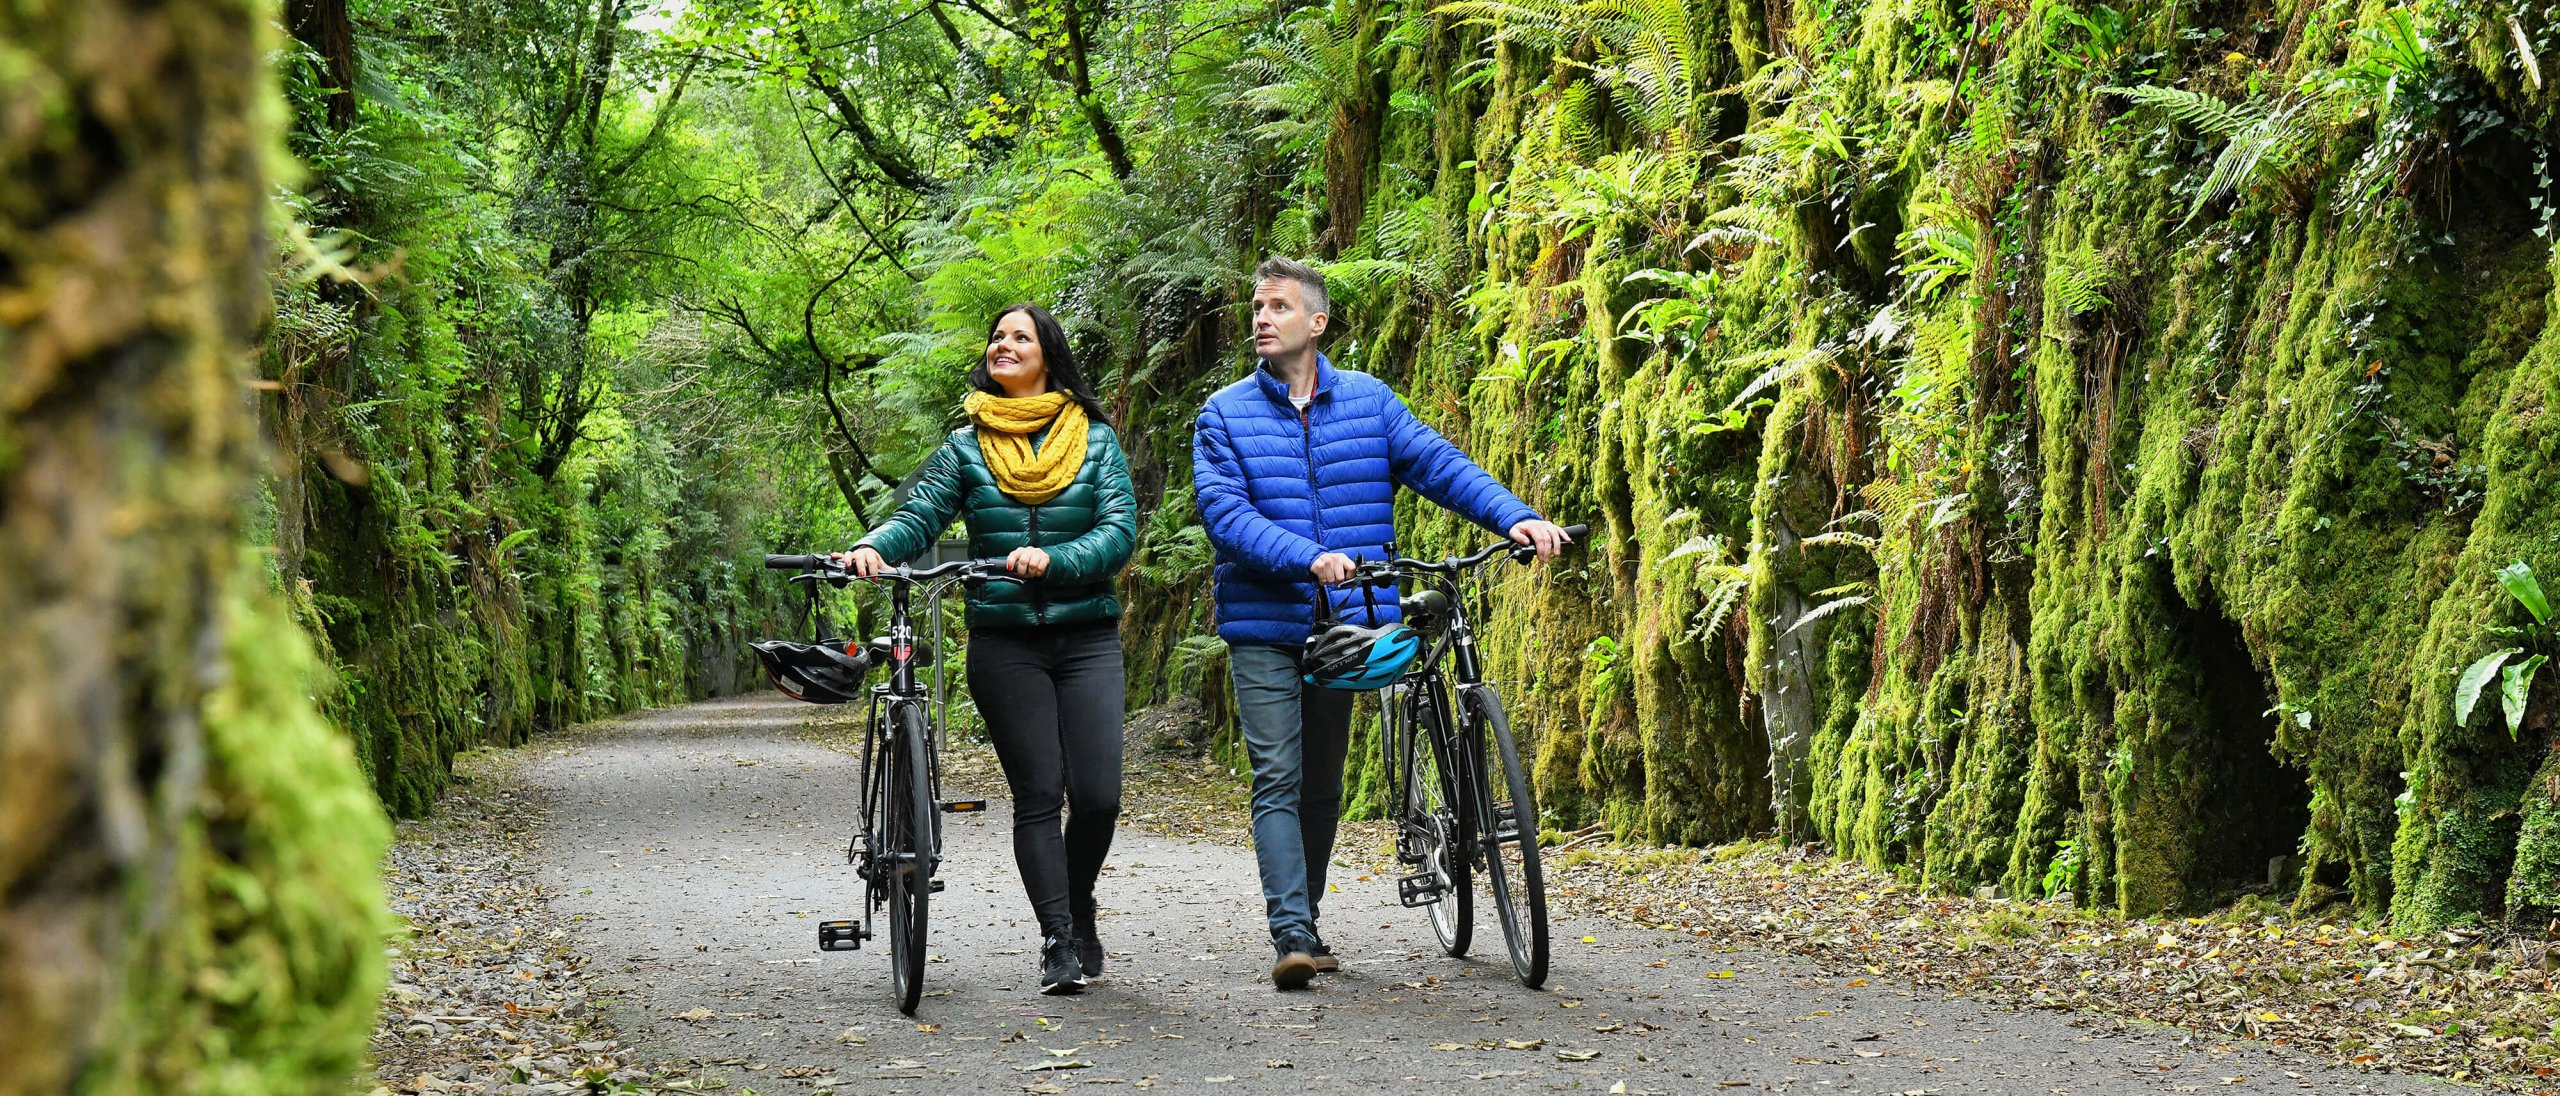 A couple walk with bikes along a moss-covered section of the Waterford Greenway in Ireland